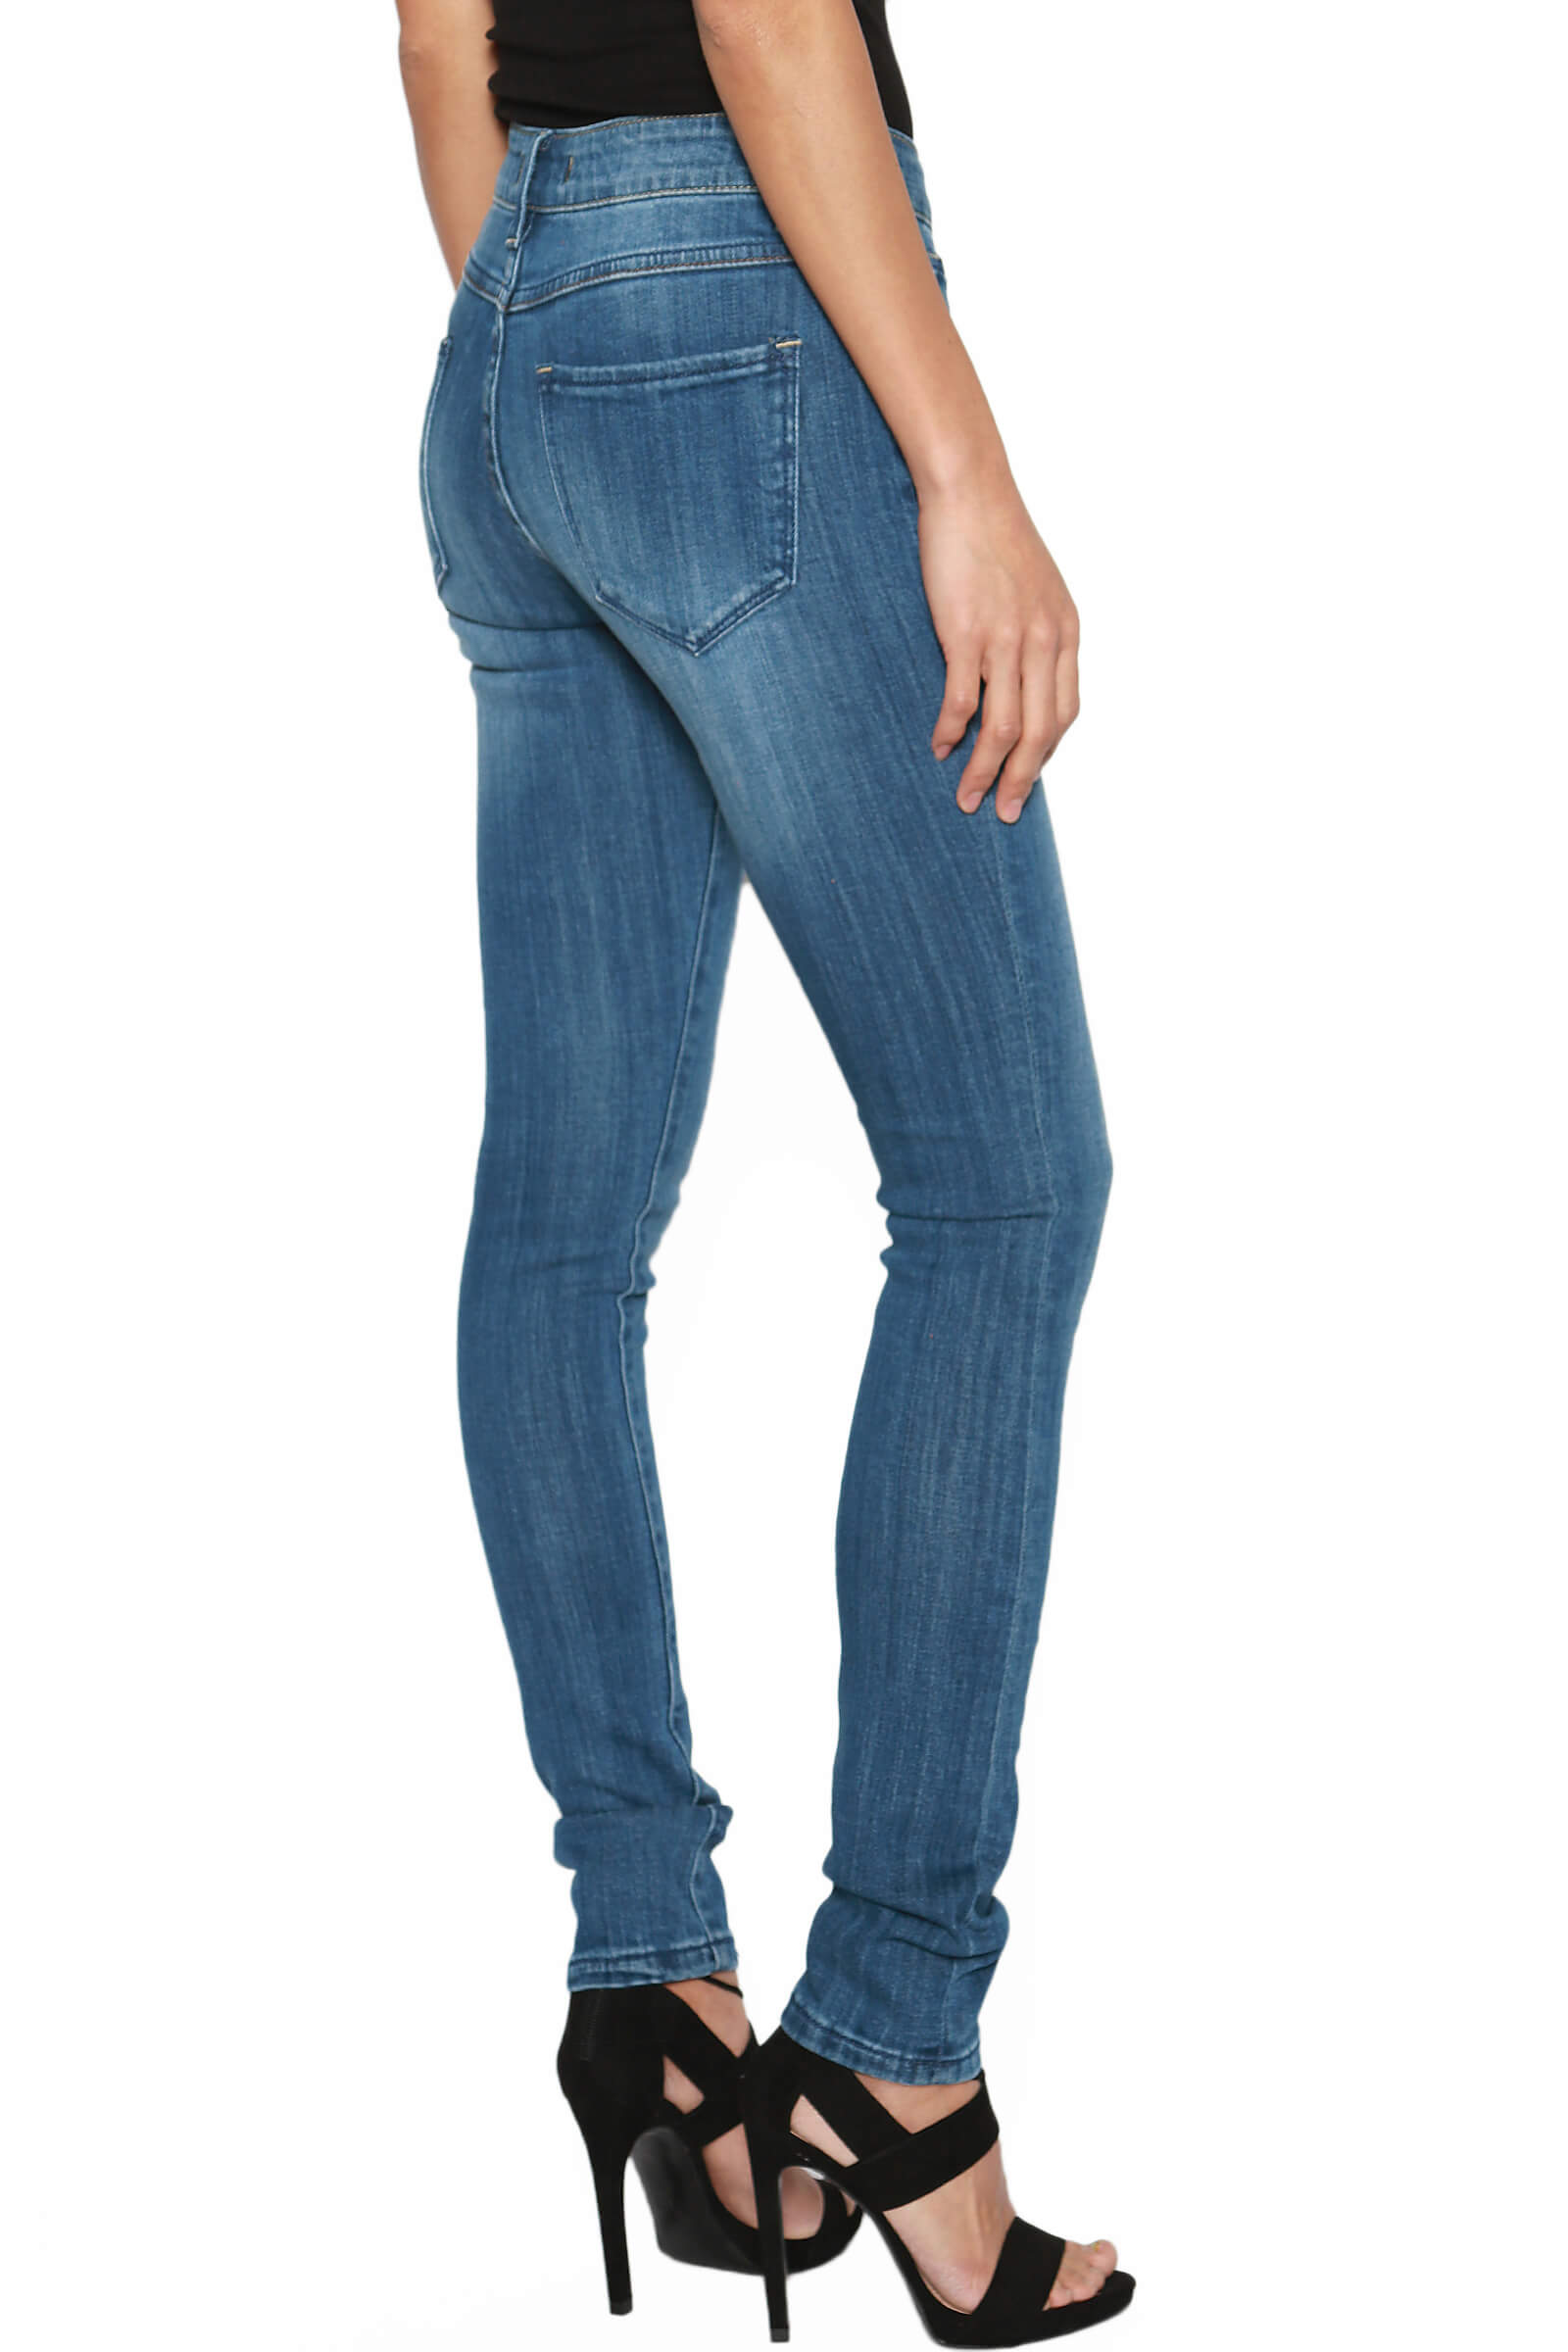 TheMogan Women/'s Perfect Fit Med Washed Mid Rise Stretch Super Skinny Jeans